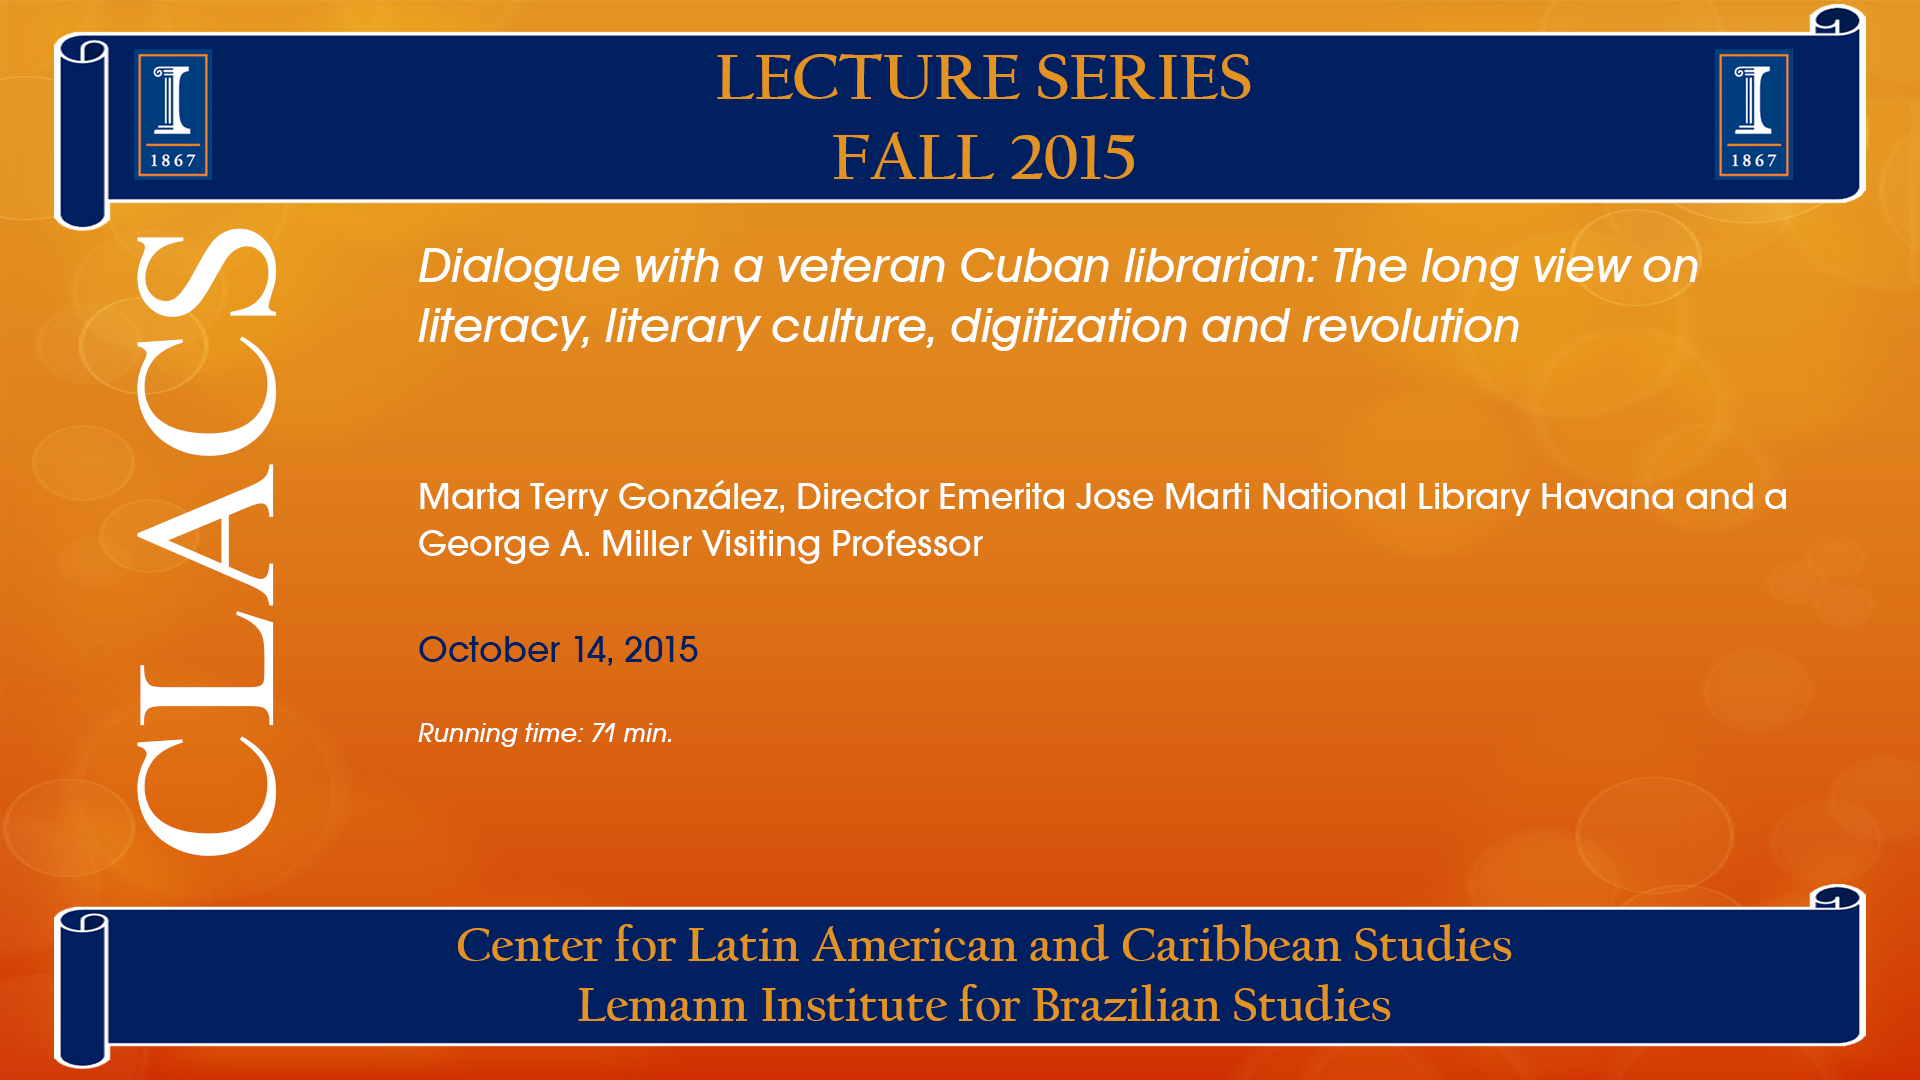 Dialogue with a veteran Cuban librarian: The long view on literacy, literary culture, digitization and revolution